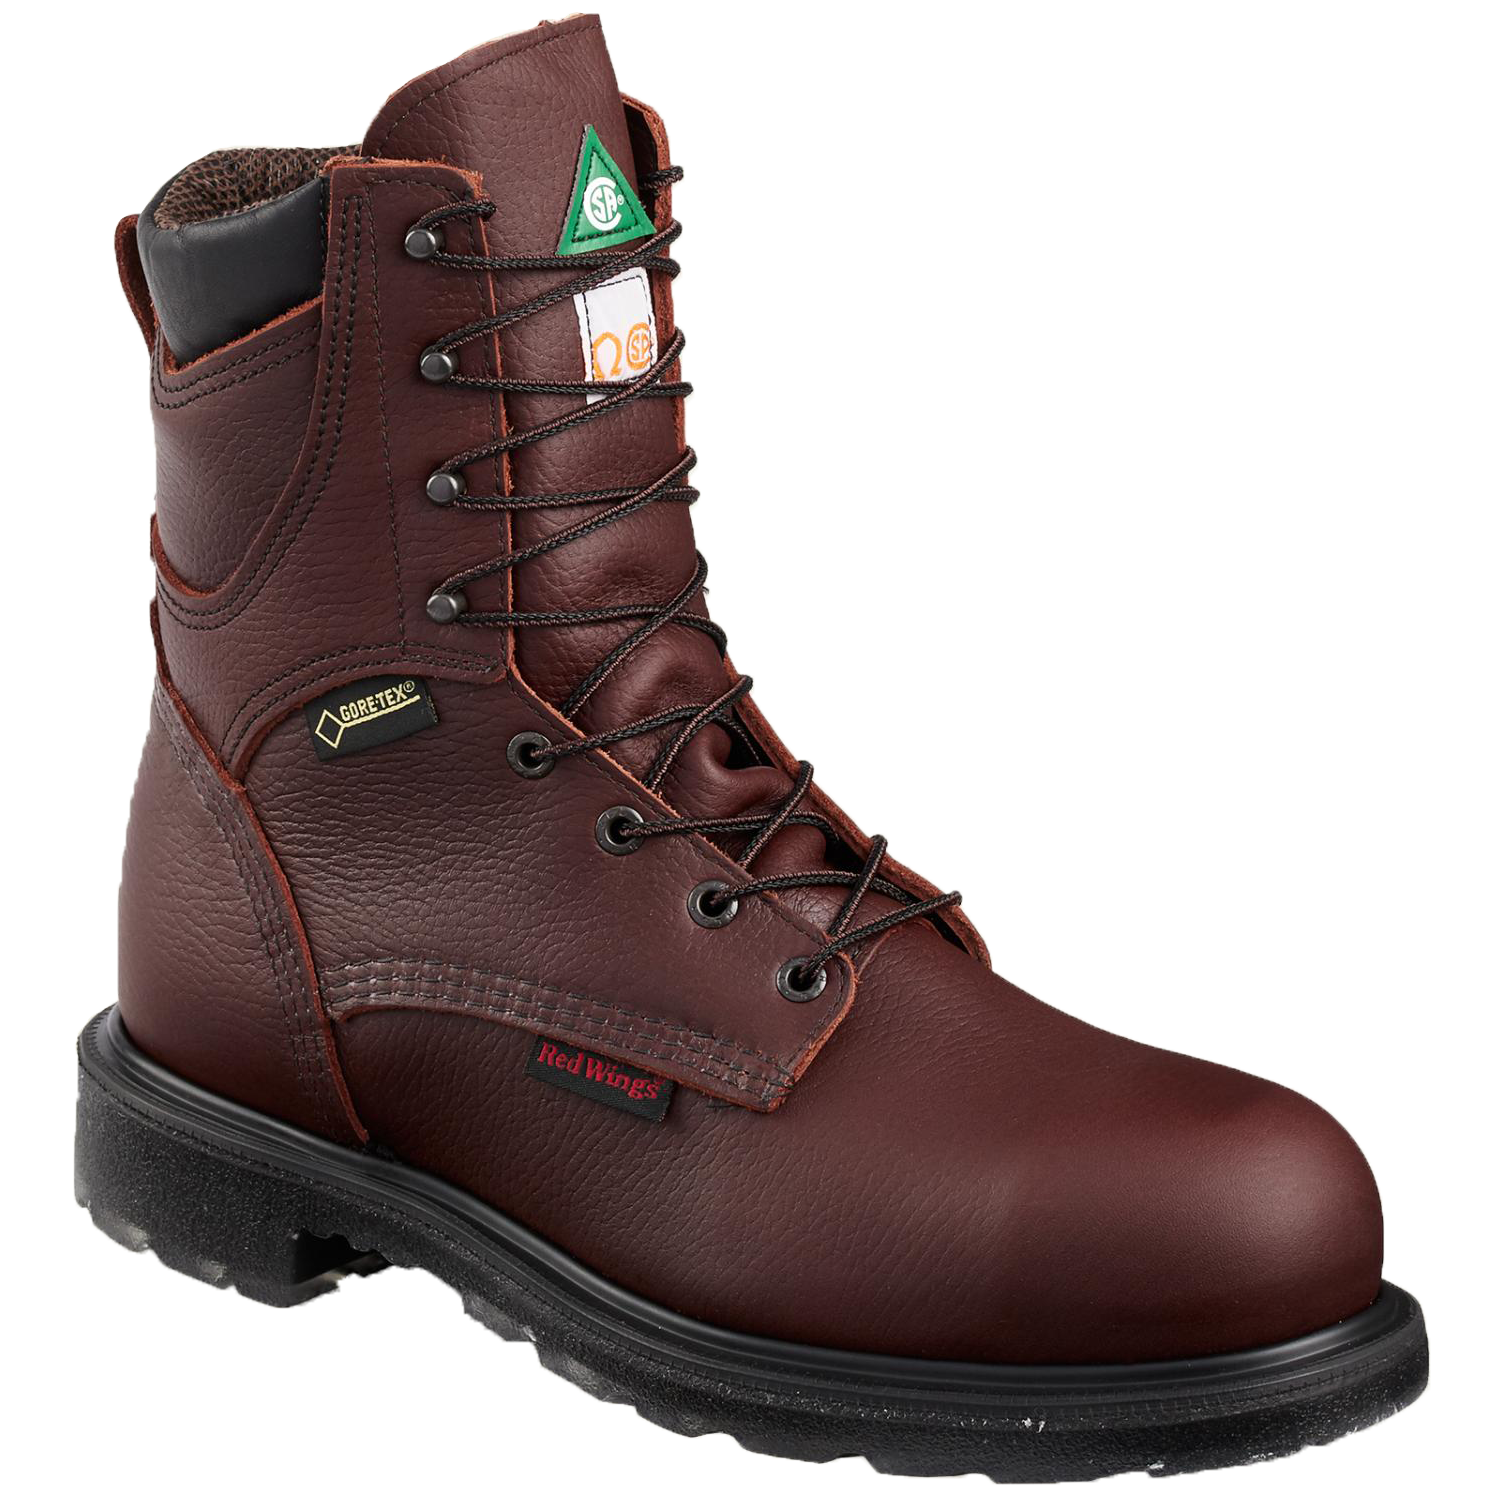 Red Wing Work Boots - Heart and Sole Shoes